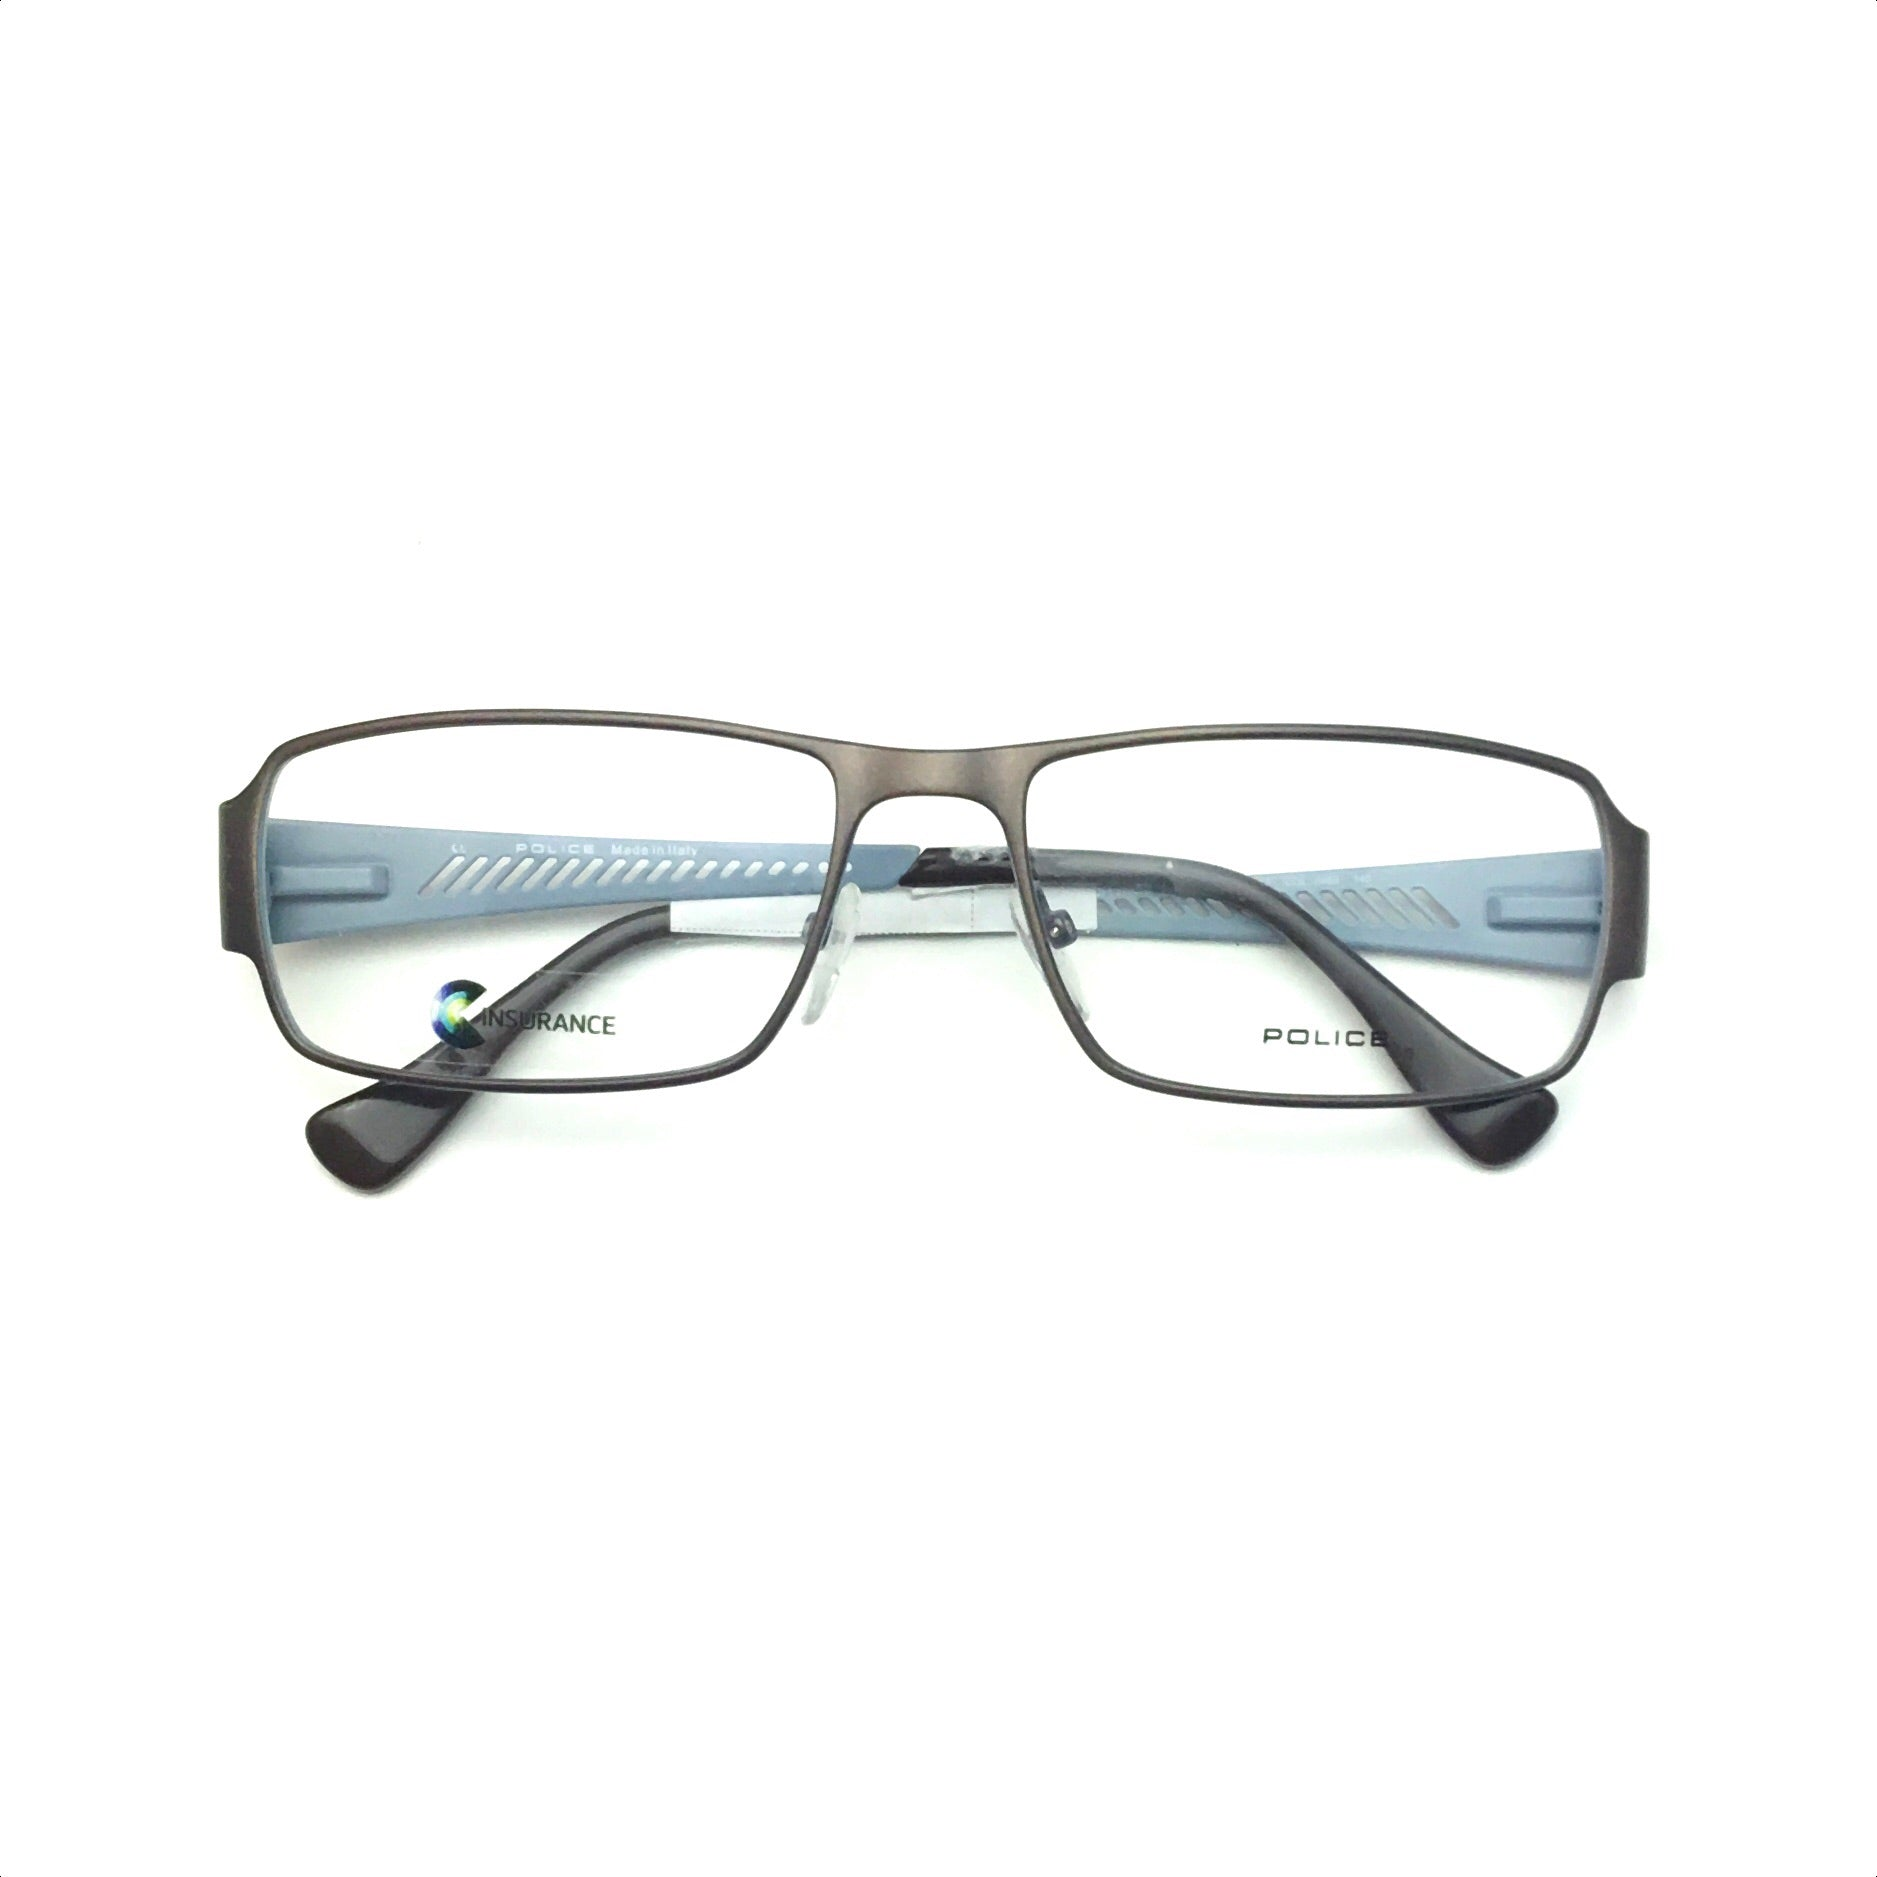 Police Glasses $219 LARGE L7